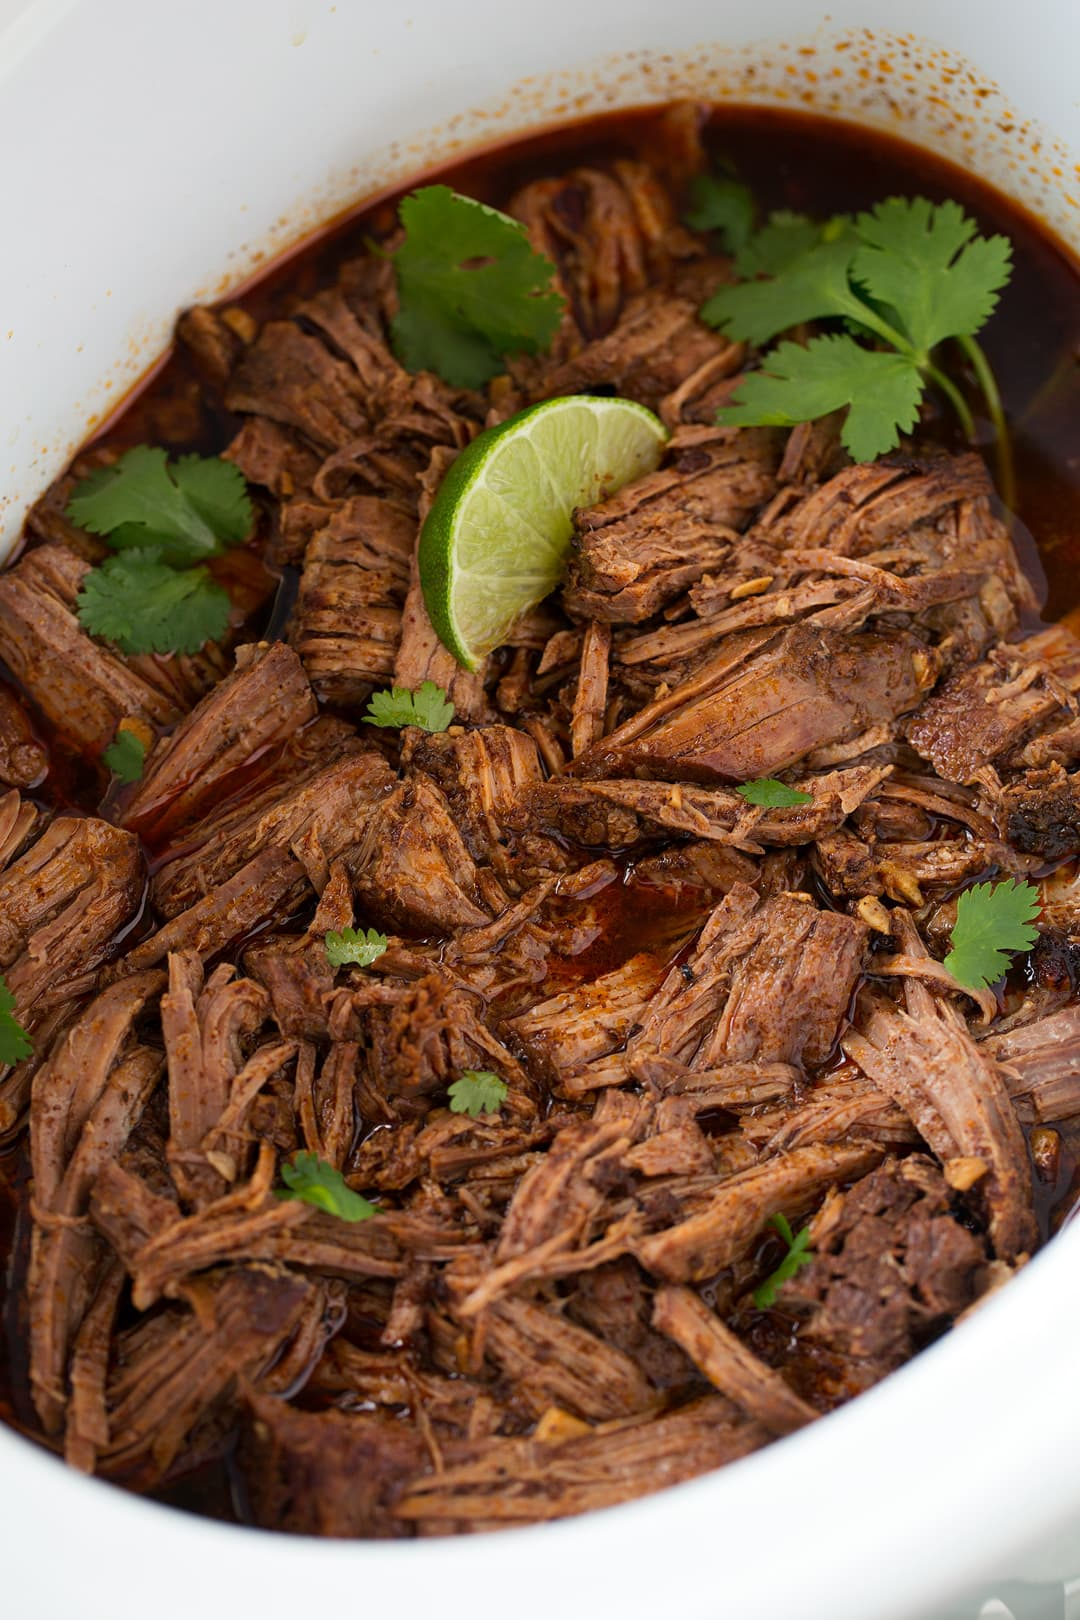 Seasoned taco meat shown here after shredded in a slow cooker